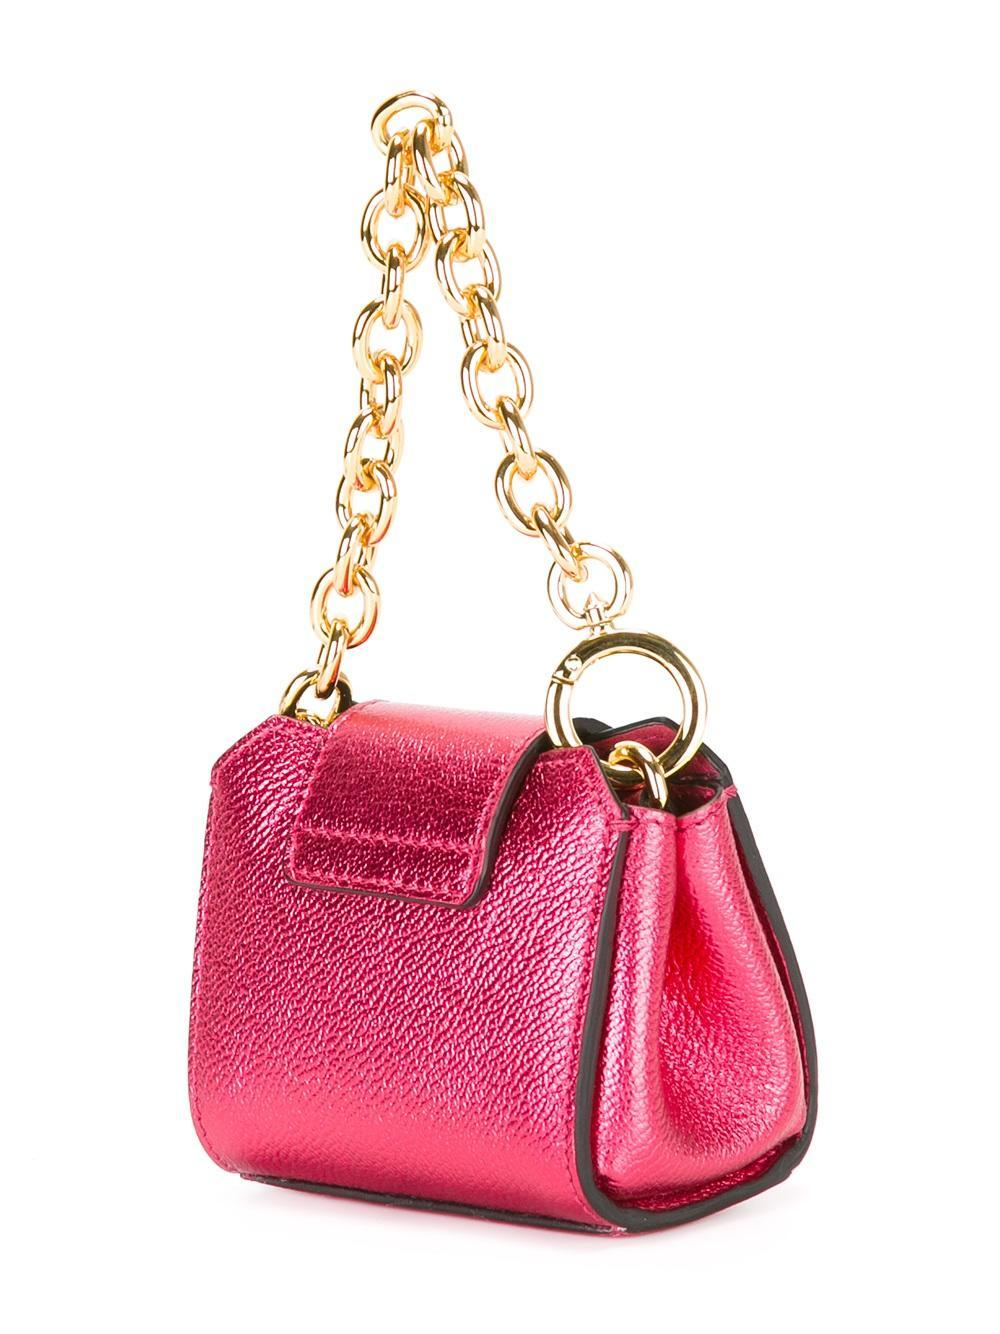 Burberry Leather Micro Buckle Tote in Pink/Purple (Pink)